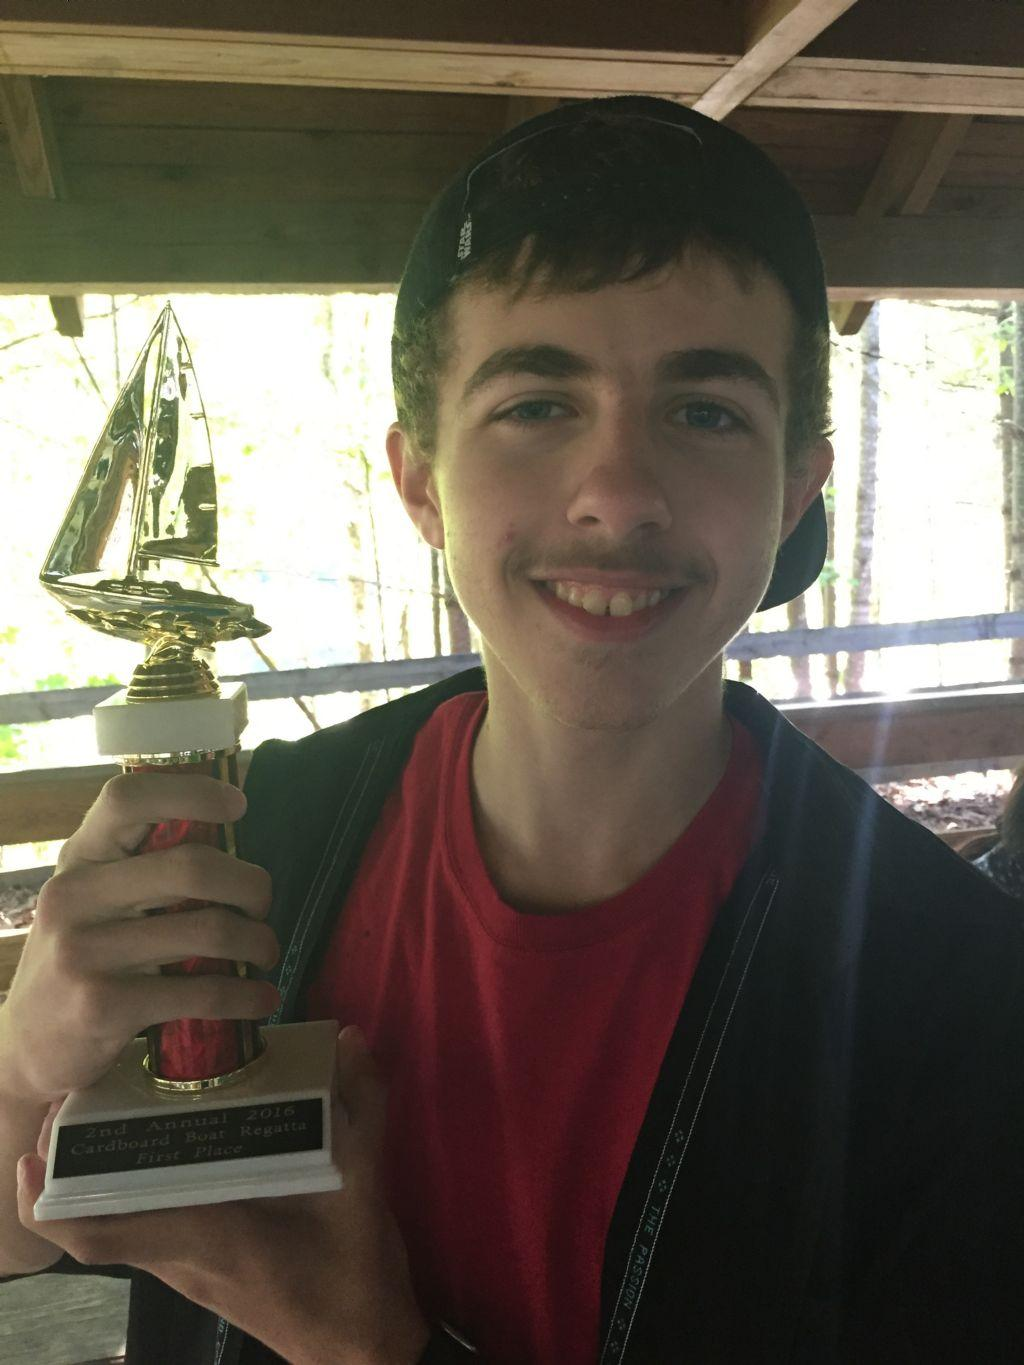 student with trophy